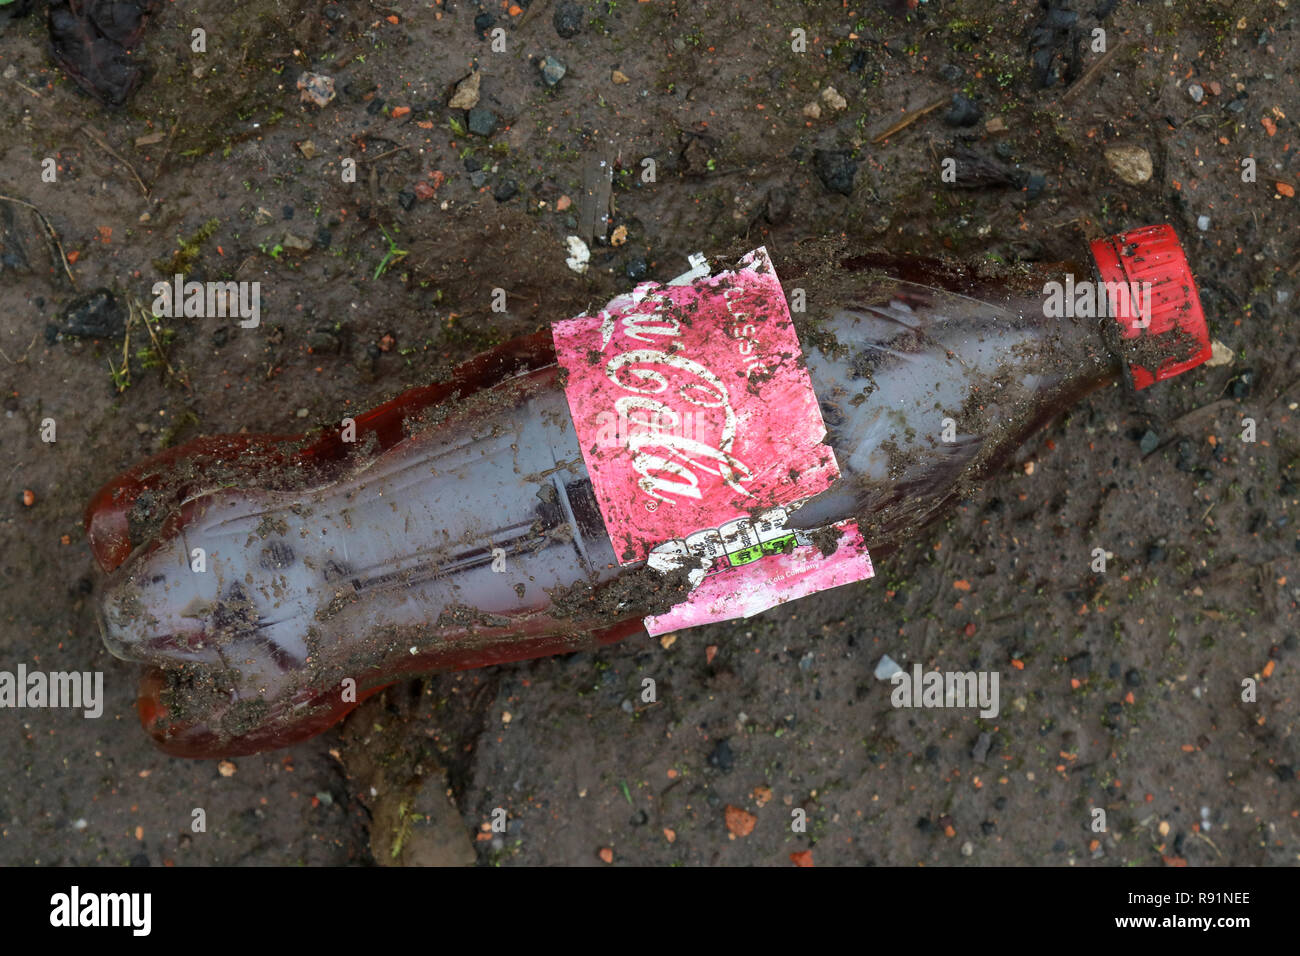 A dirty discarded plastic Coca Cola bottle in the mud at the former IBM factory site in Spango Valley, Greenock, Scotland - Stock Image